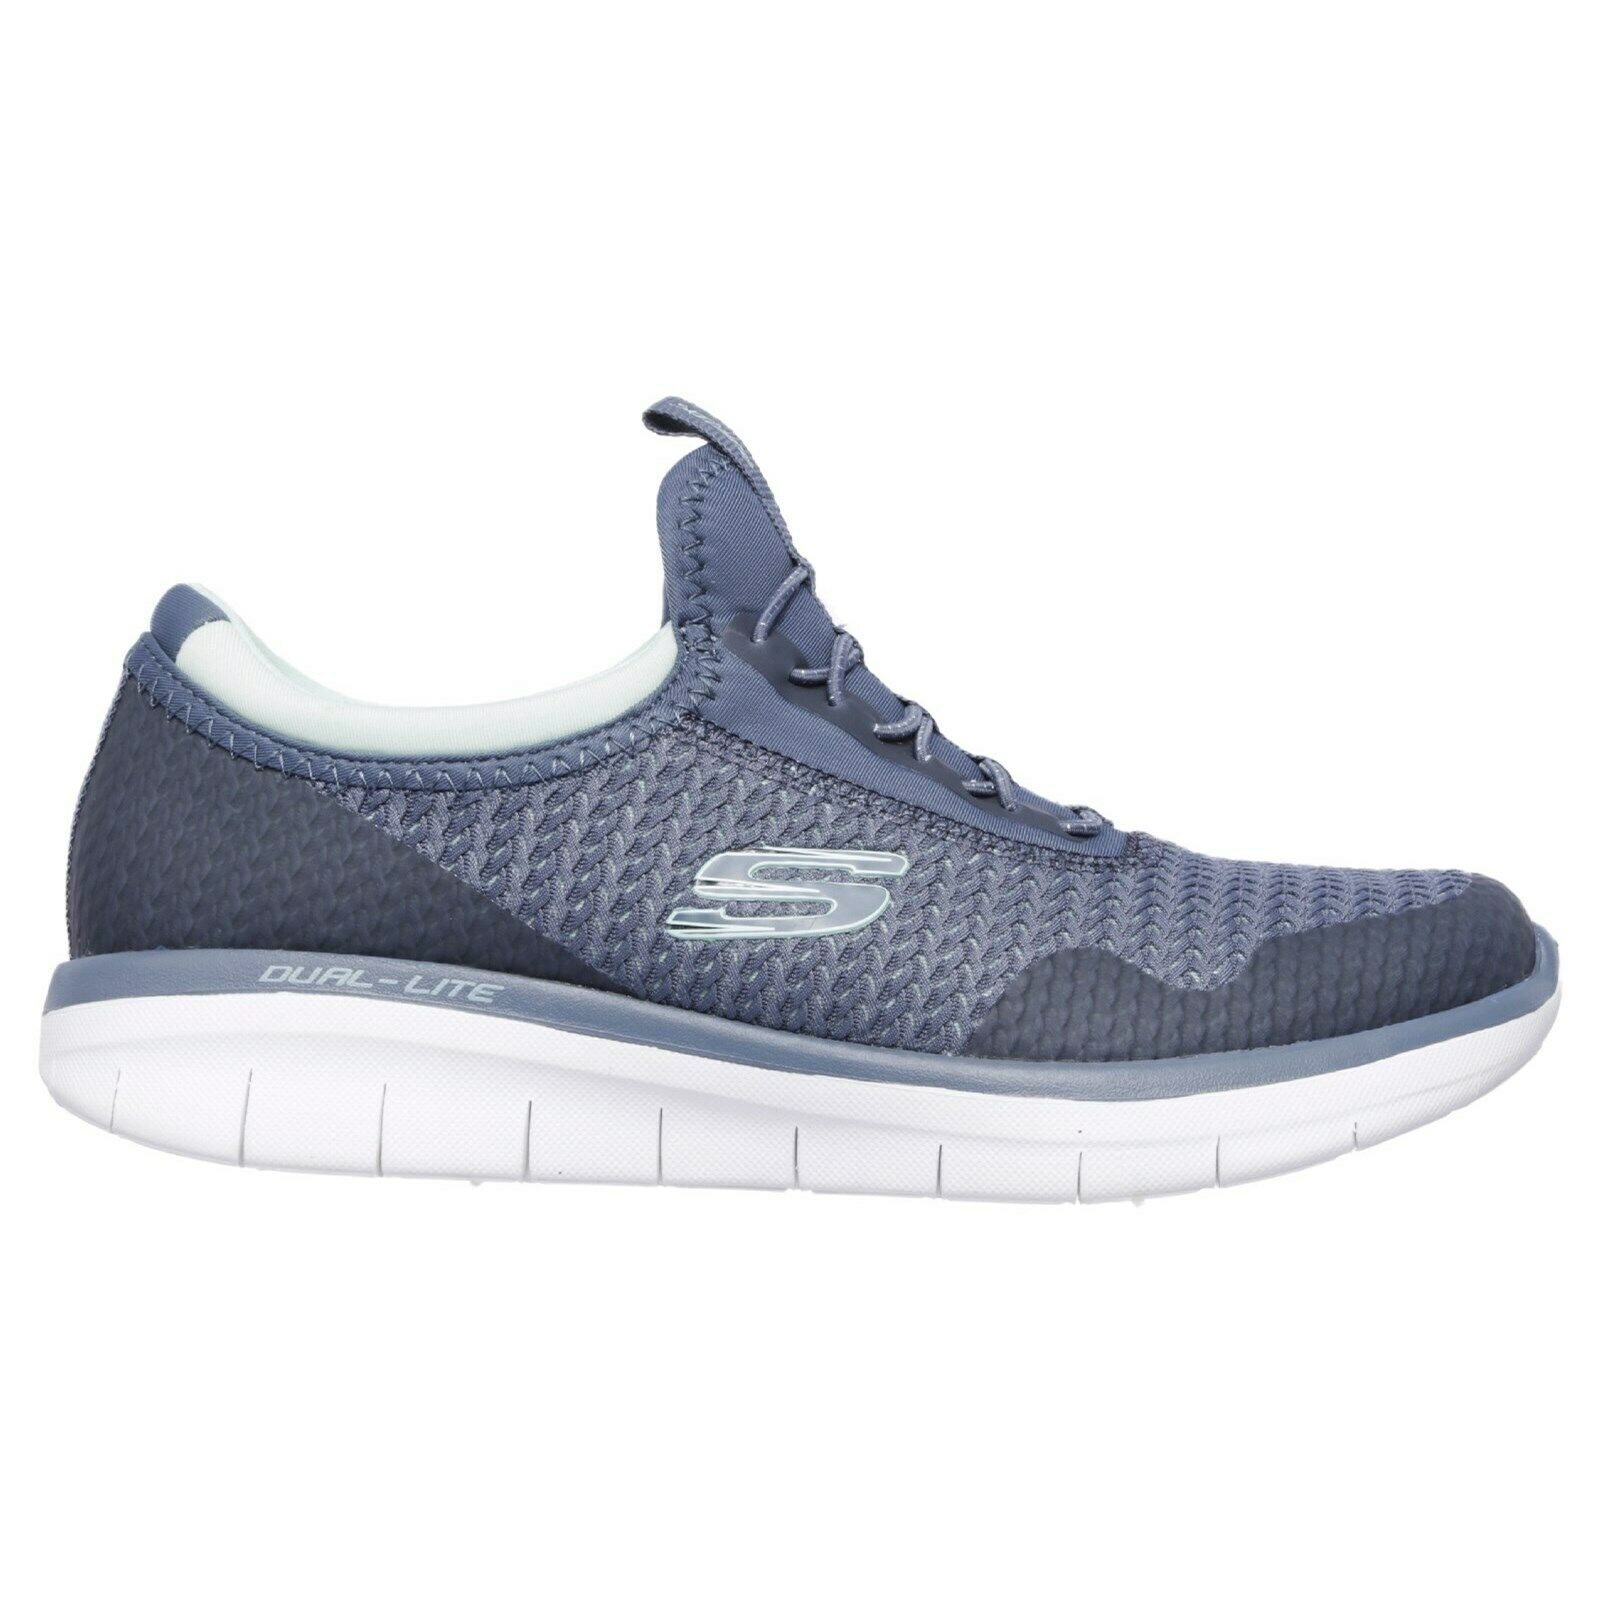 Skechers Synergy 2.0 Mirror Image Trainers Memory Foam Mesh Sports Womens shoes